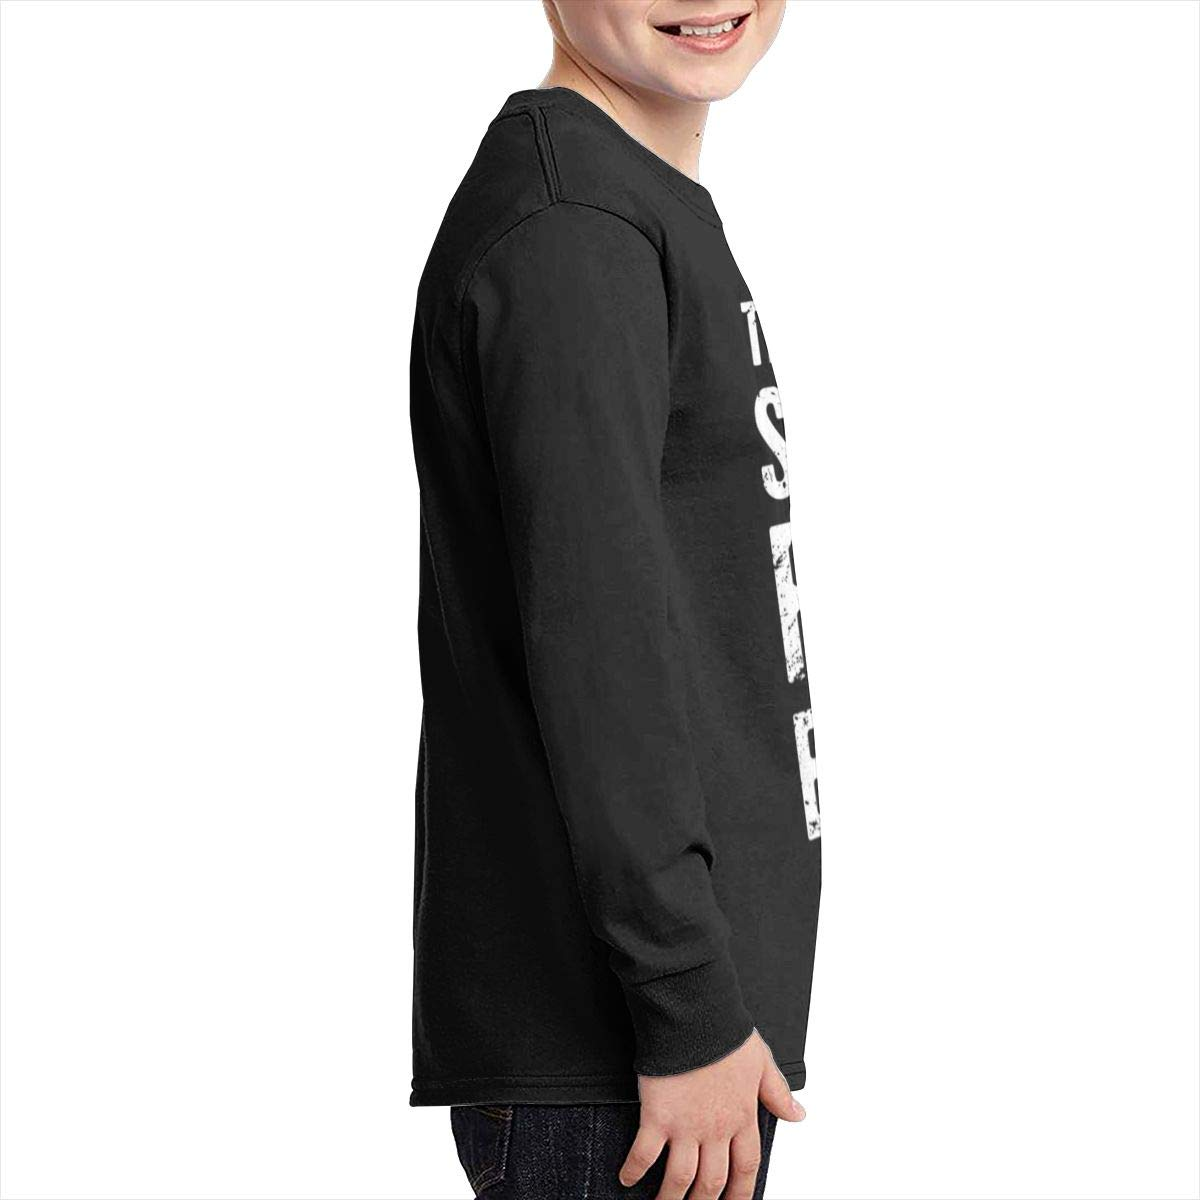 This Guy Sells Real Estate Teen Boy Girl Wicking Pullover Sweatshirt Funny Shirt